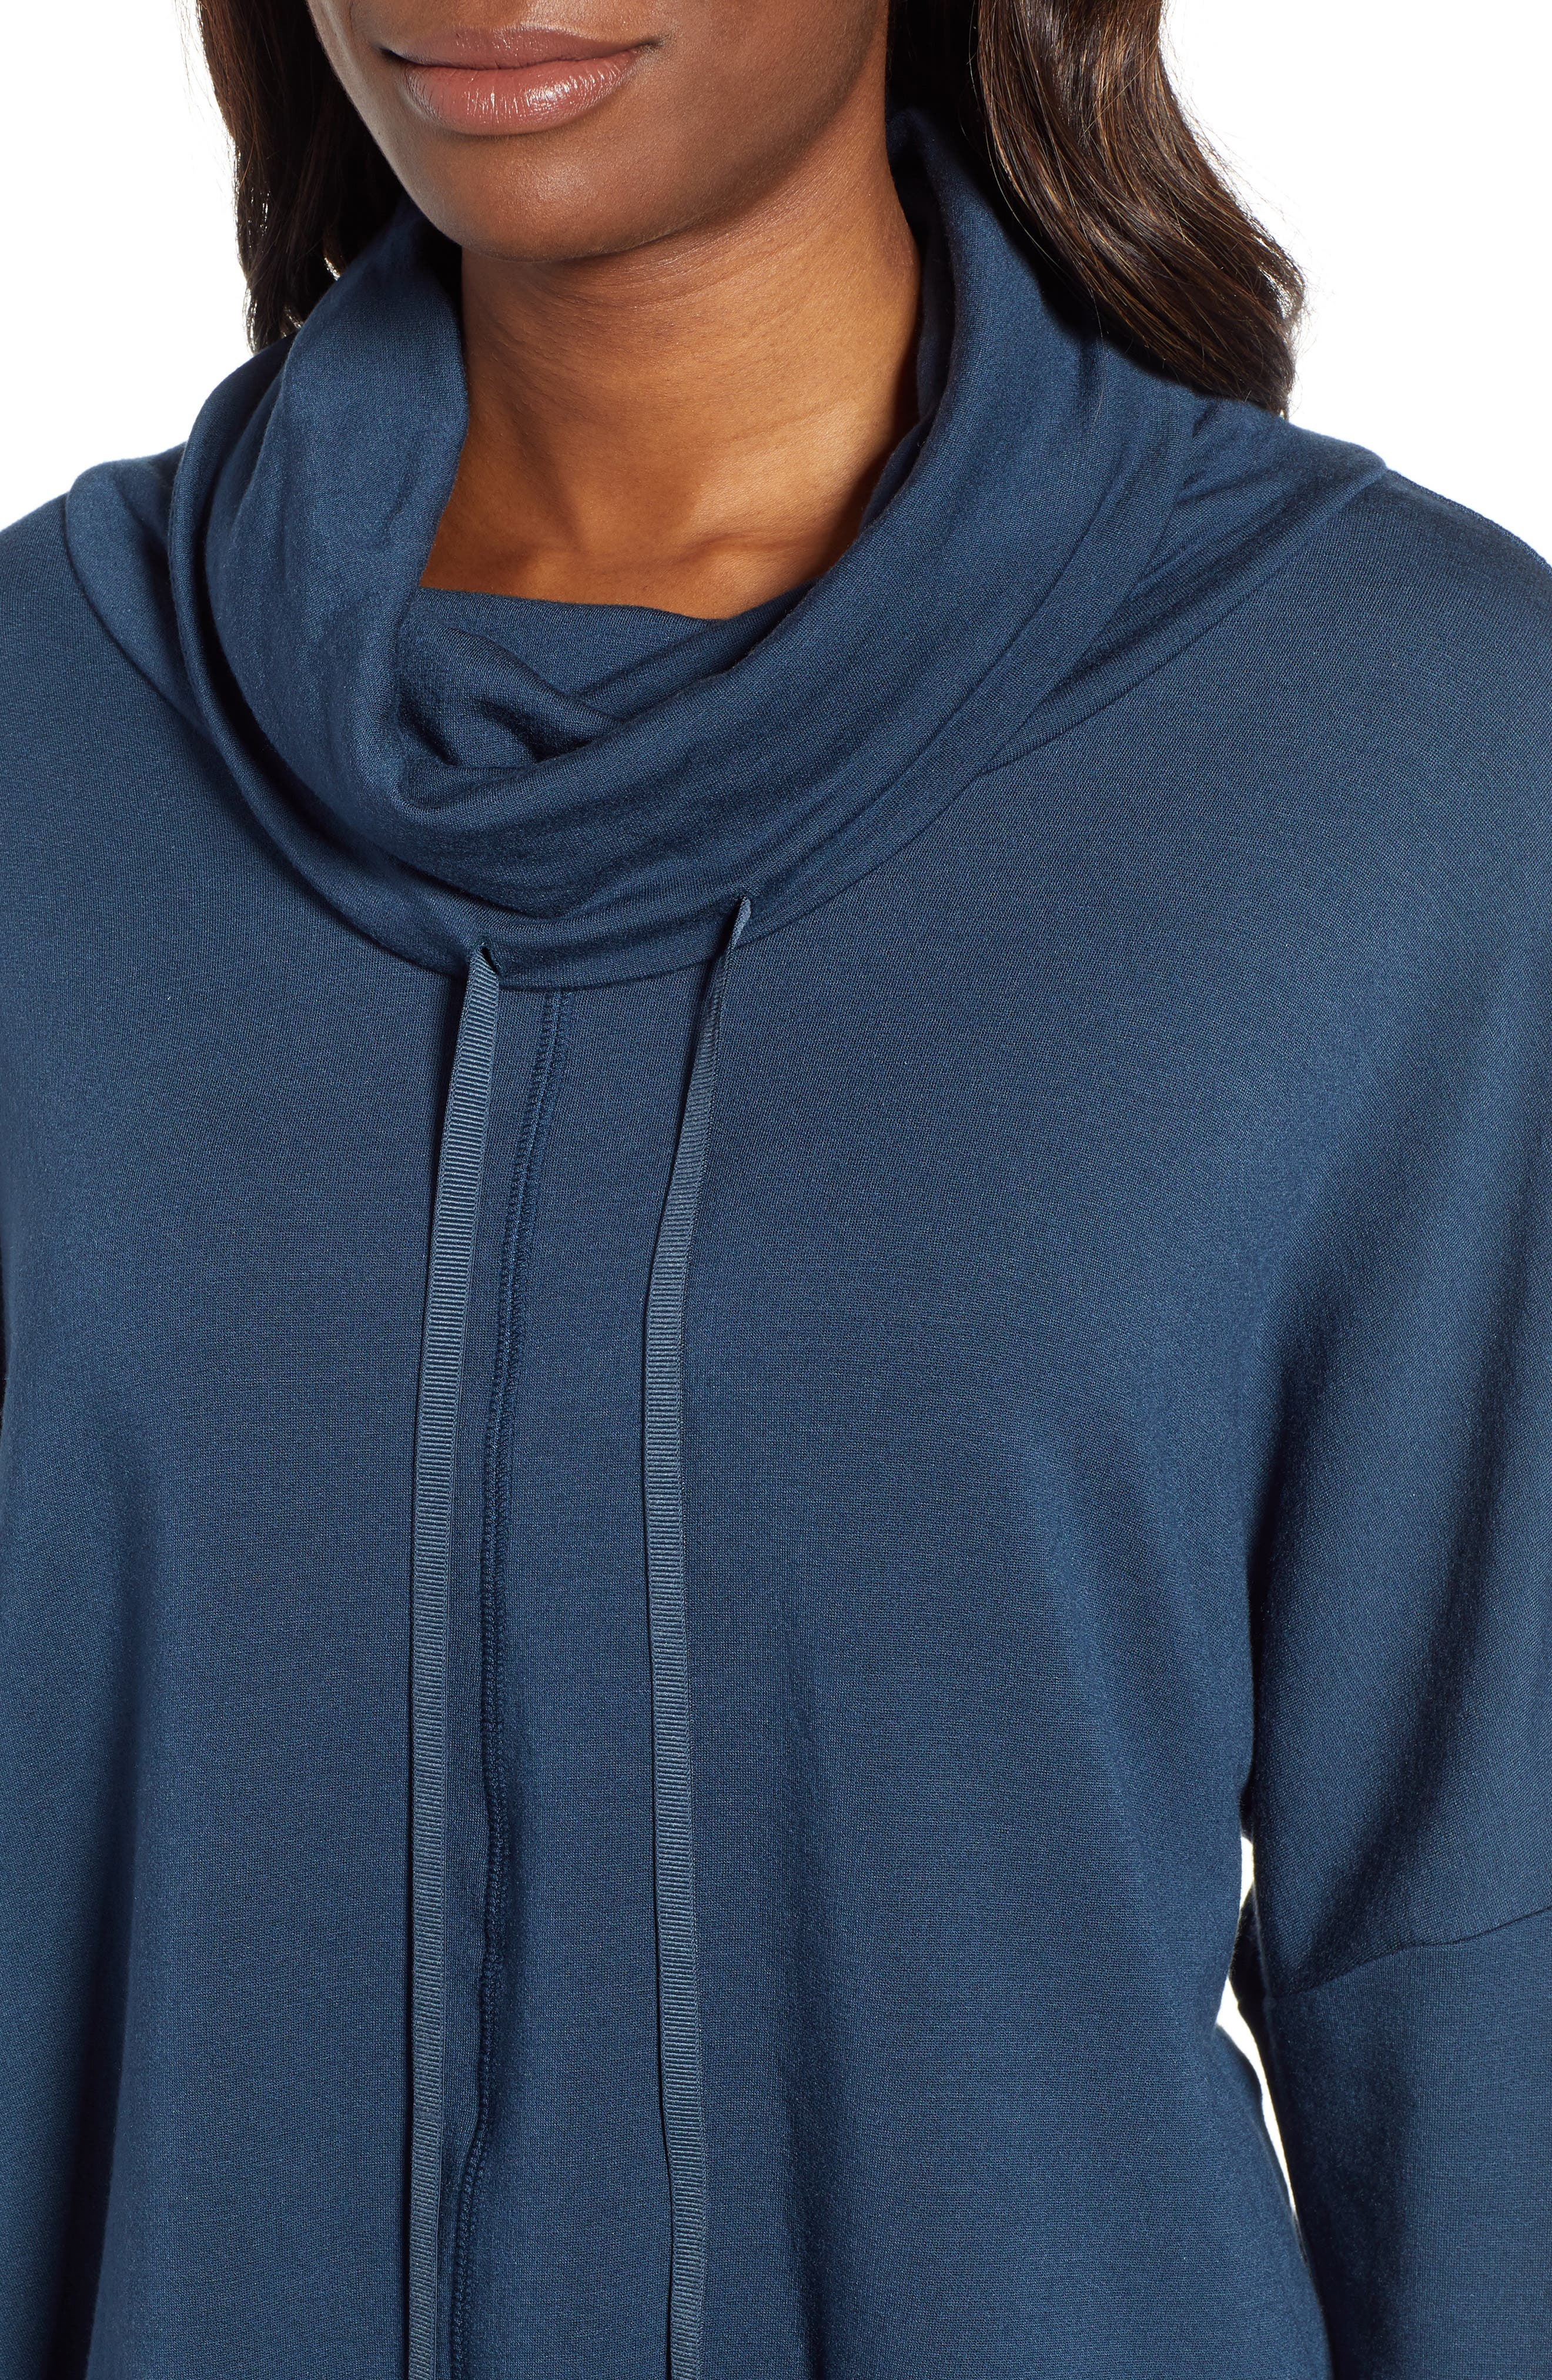 Off-Duty Funnel Neck Sweatshirt,                             Alternate thumbnail 4, color,                             TEAL ABYSS